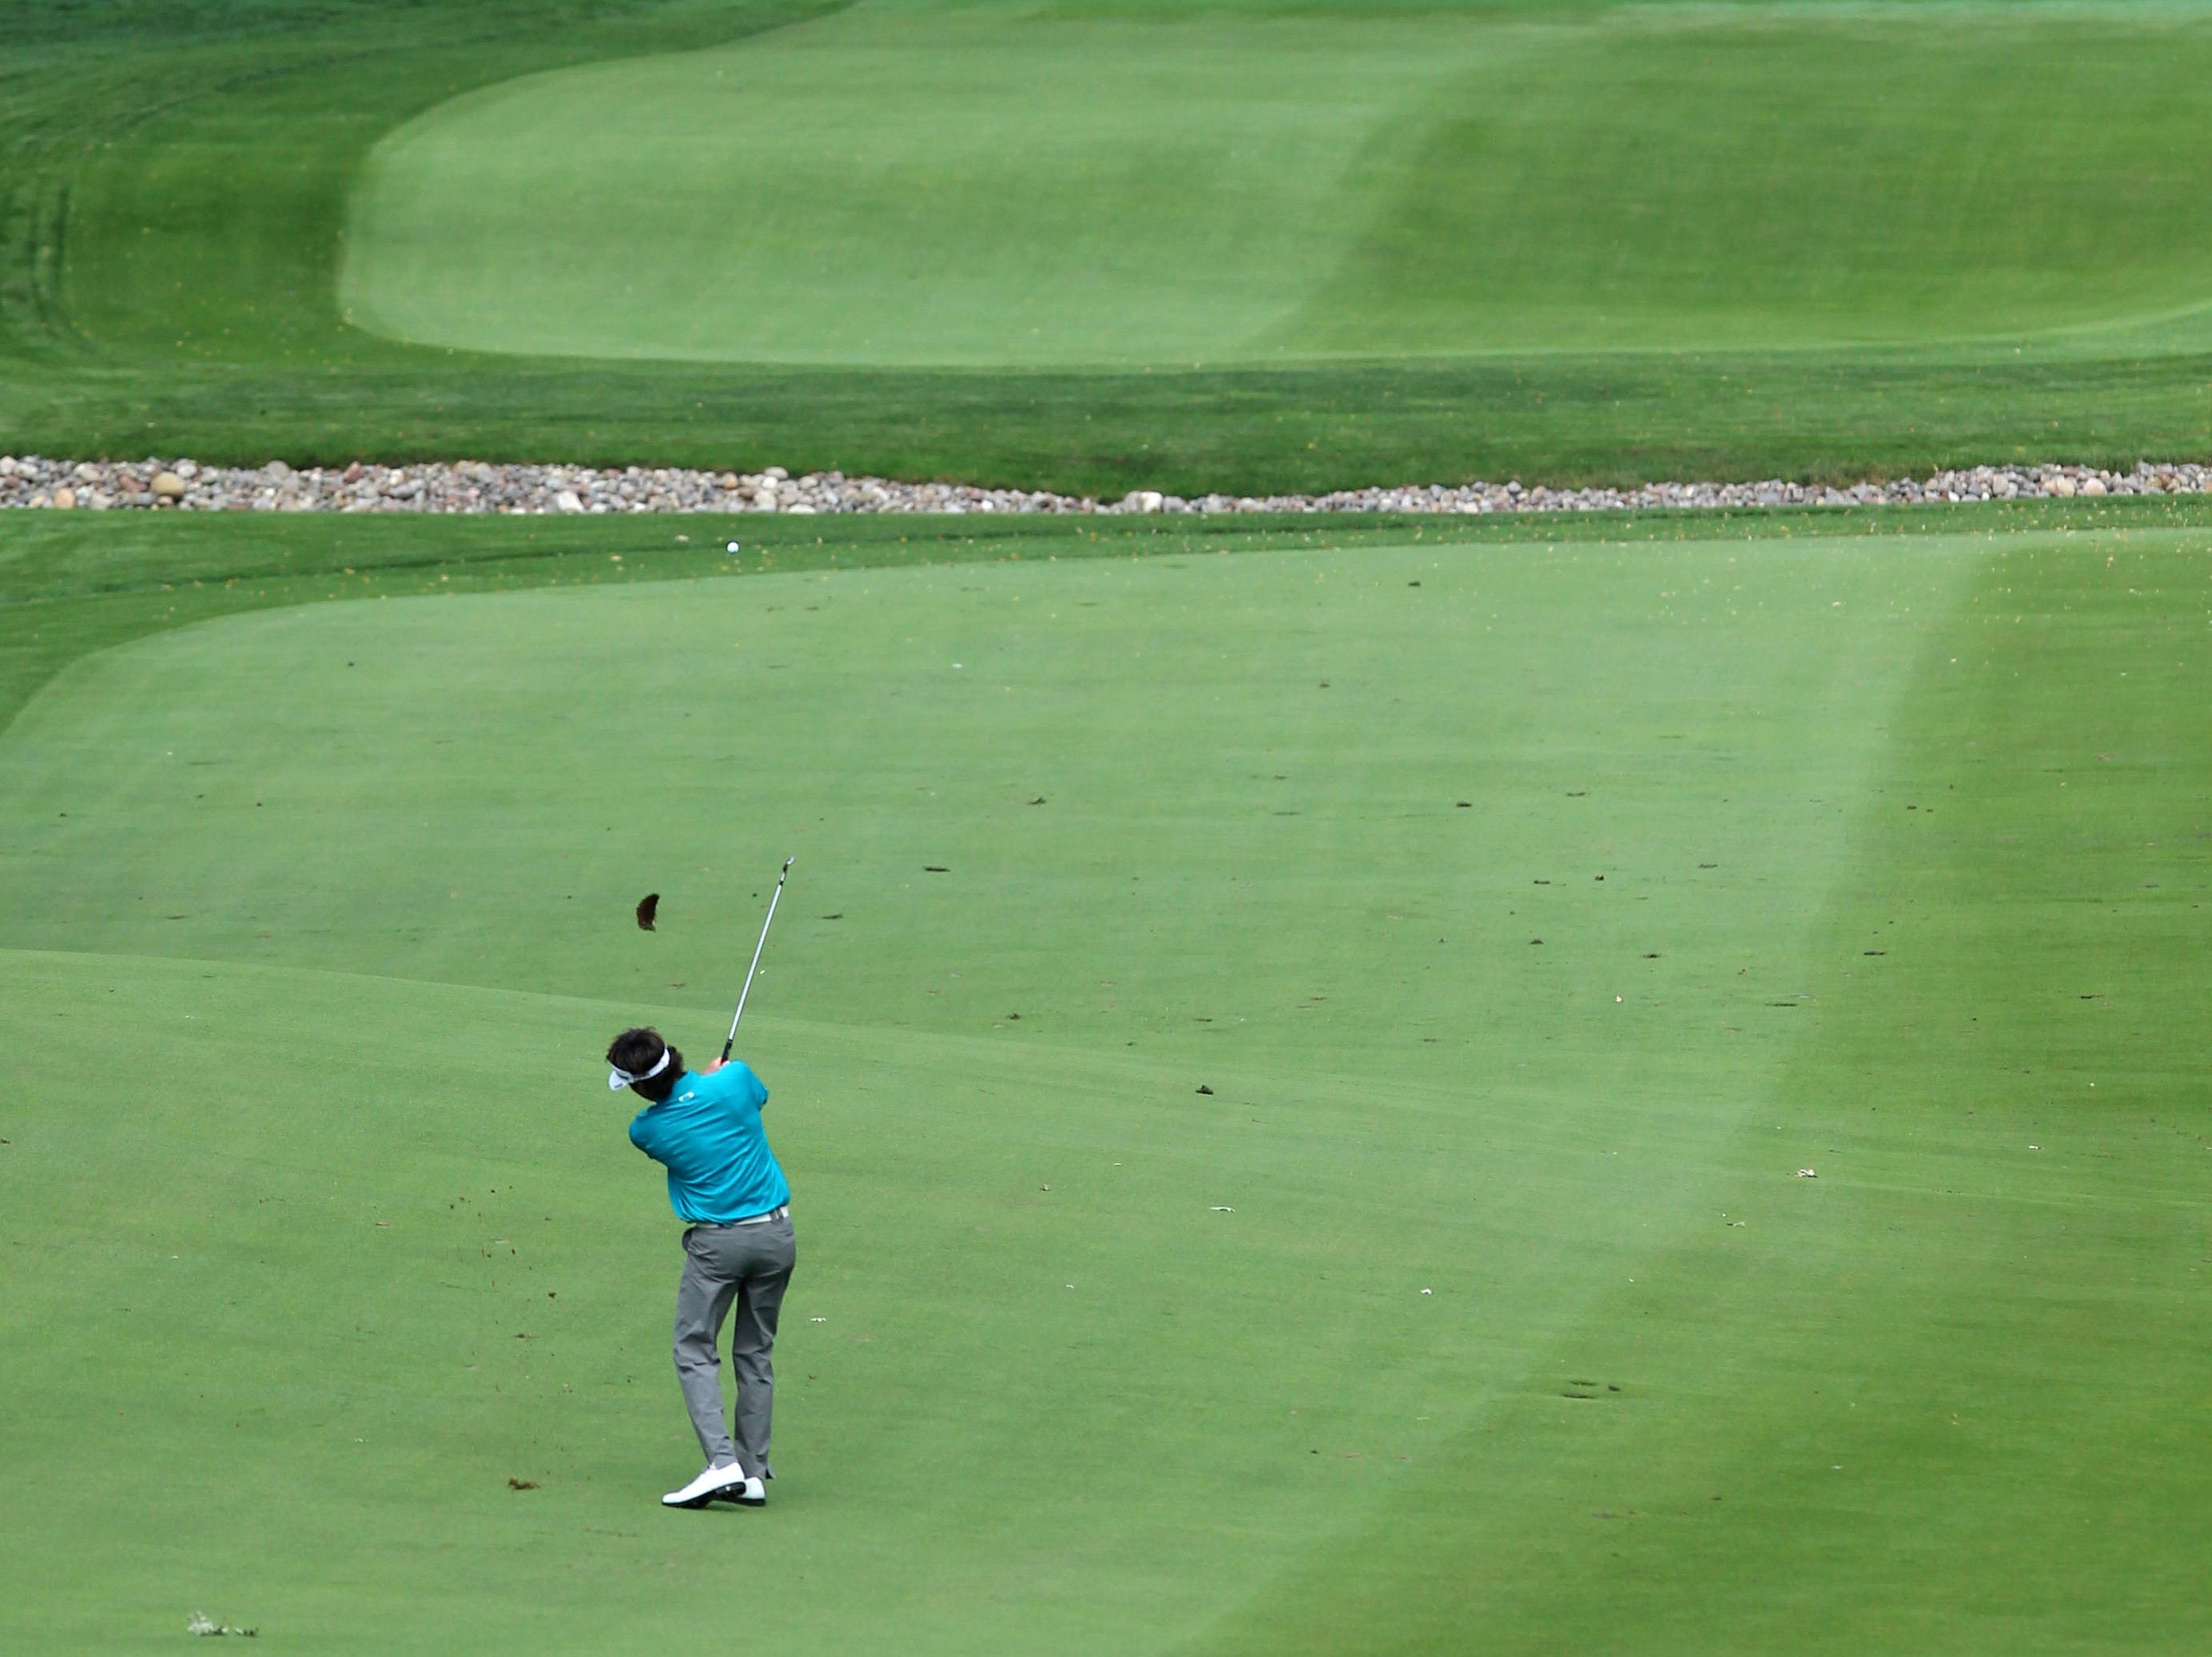 Bubba Watson plays a shot during the practice round of the 95th PGA Championship at Oak Hill Country Club.